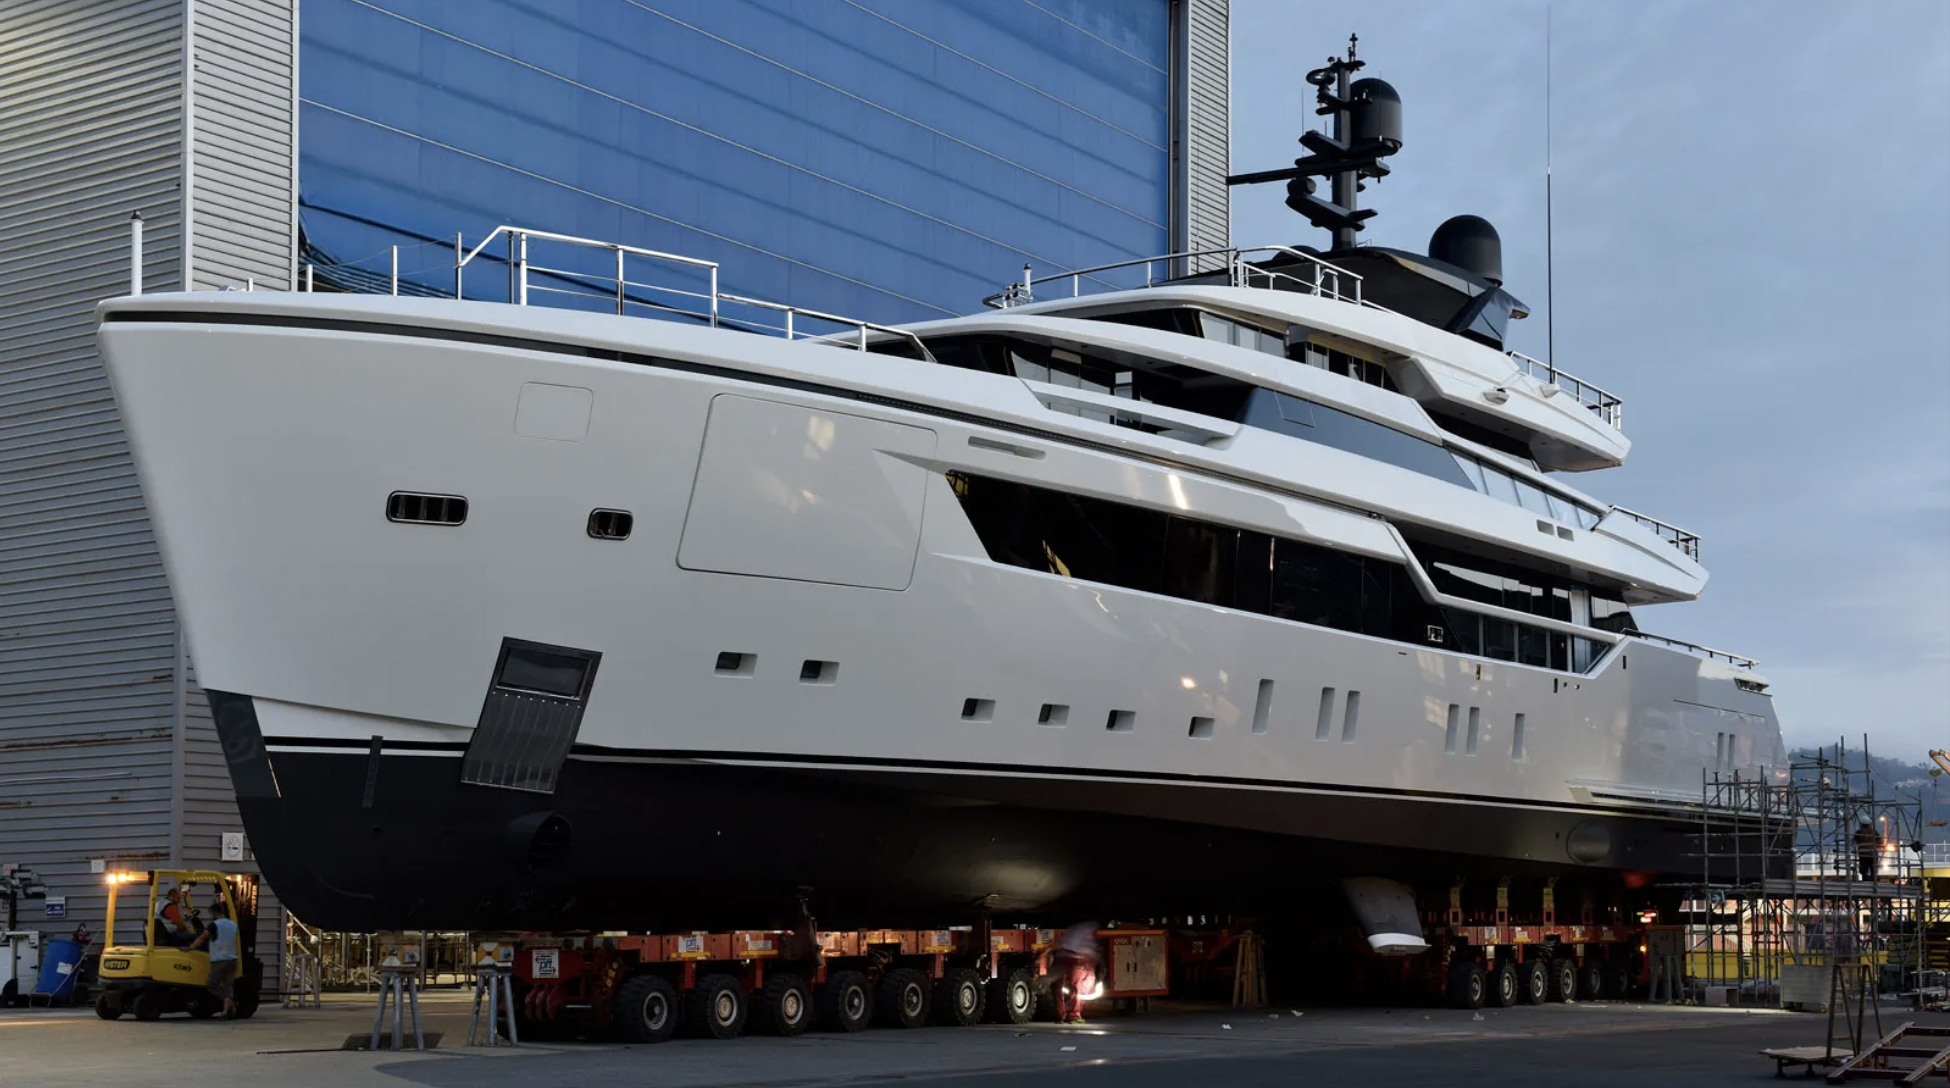 Sanlorenzo 44 Alloy being launched from the shipyard